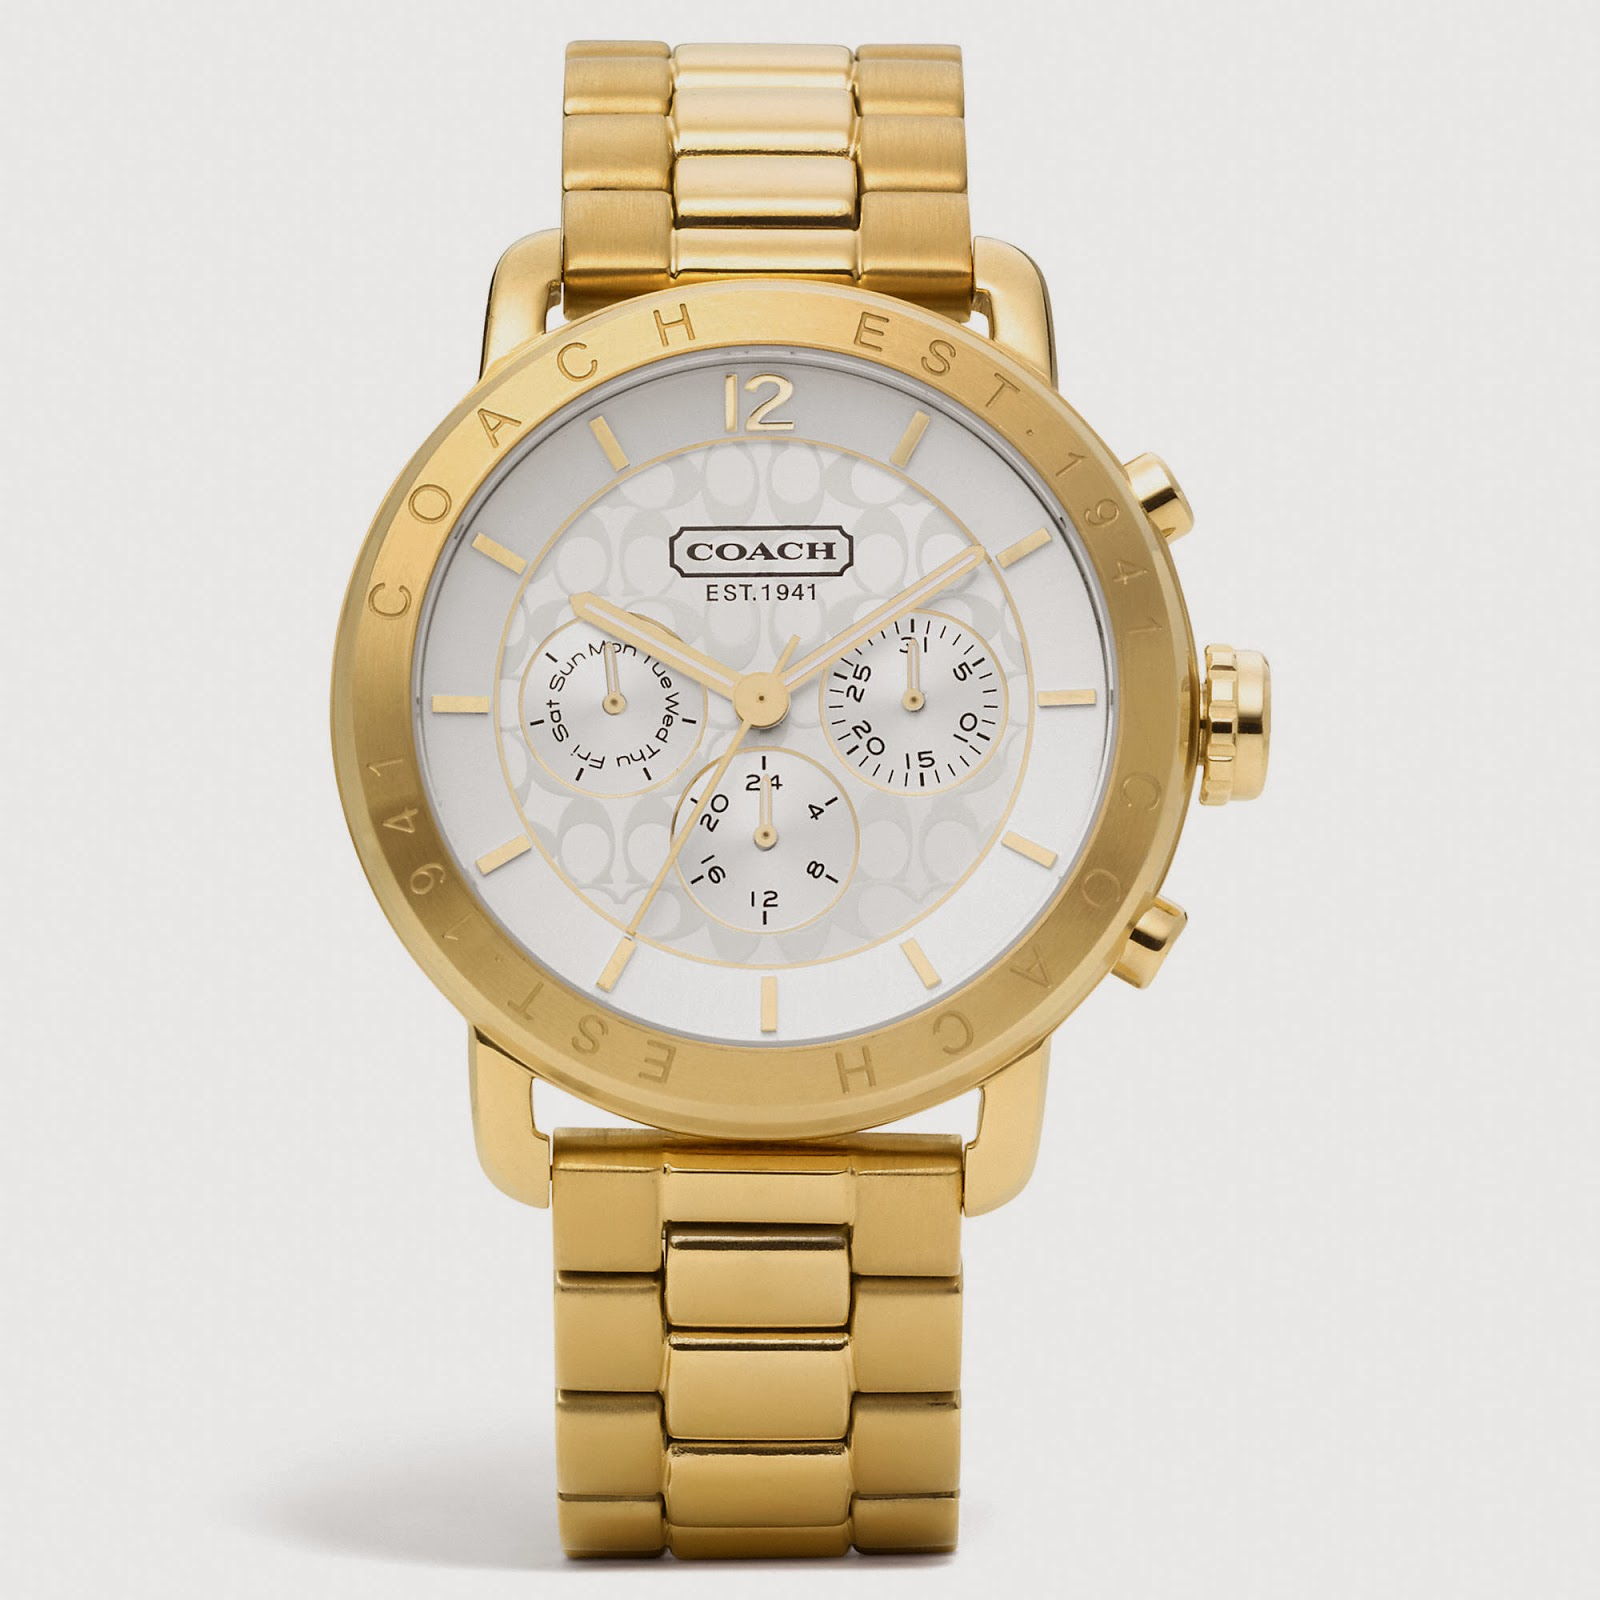 Latest Fashion Trends: Coach USA Latest Watches for Men ...